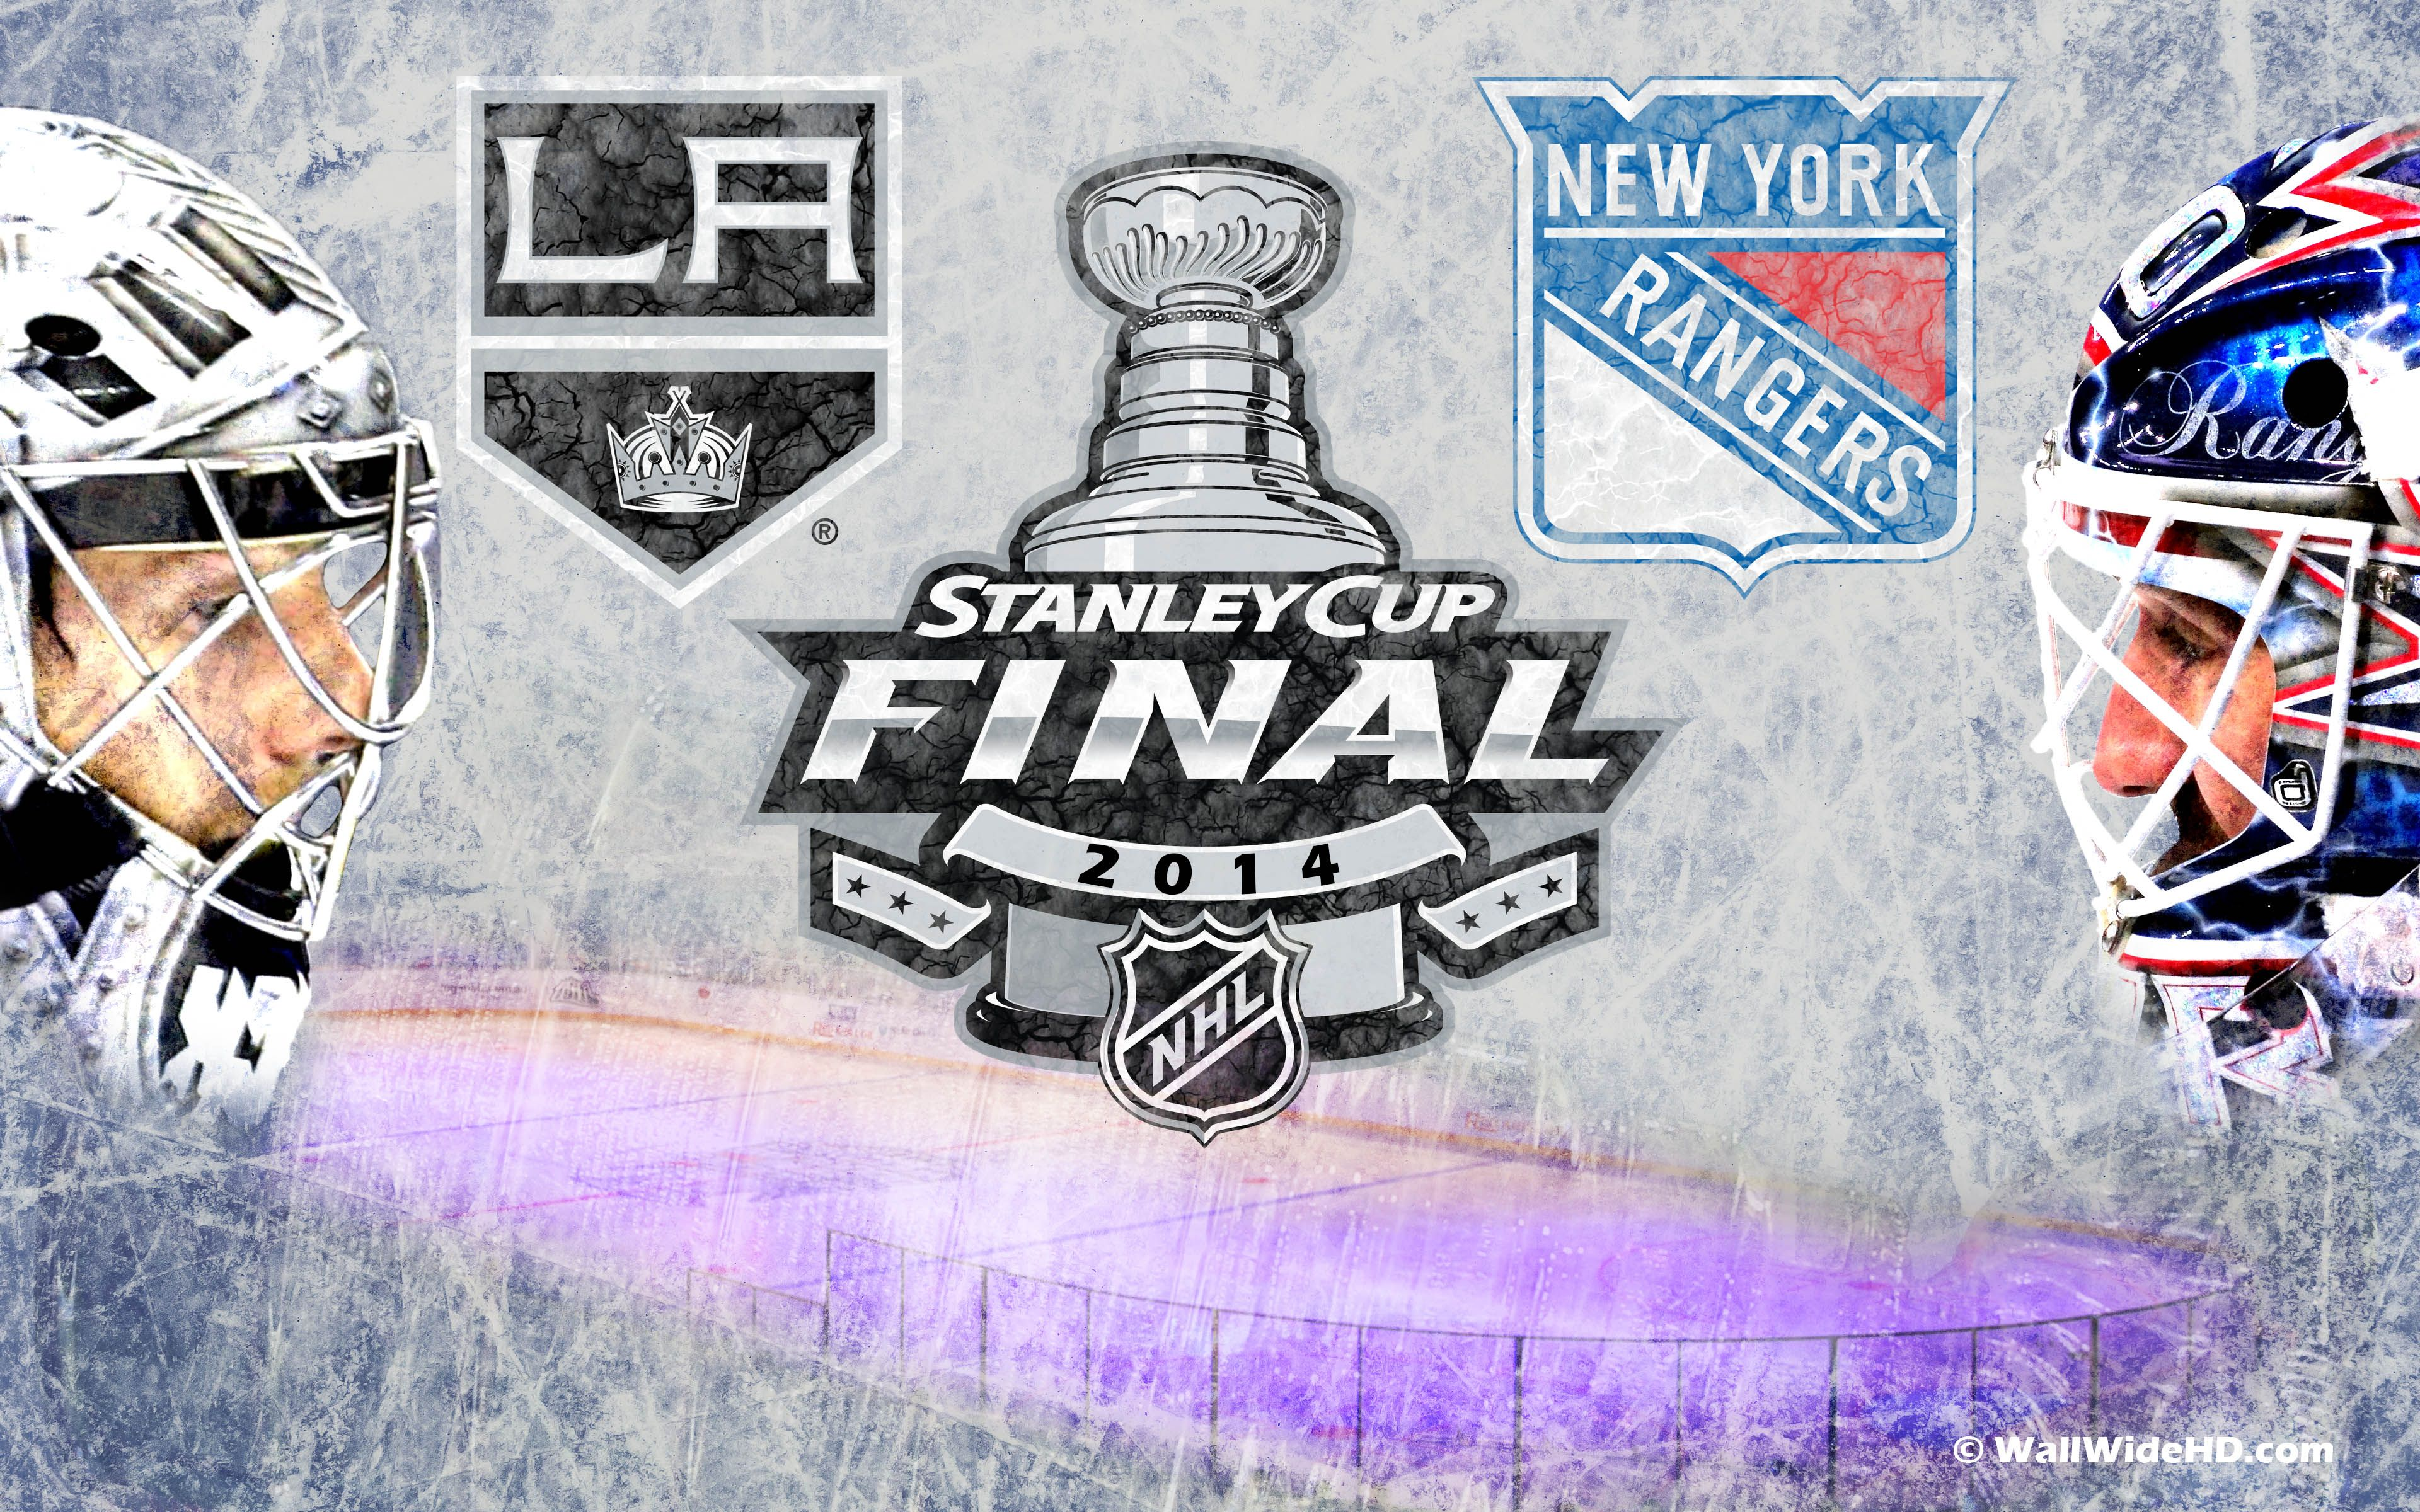 Prediction Kings Vs Rangers Stanley Cup Finals Game 3 New York